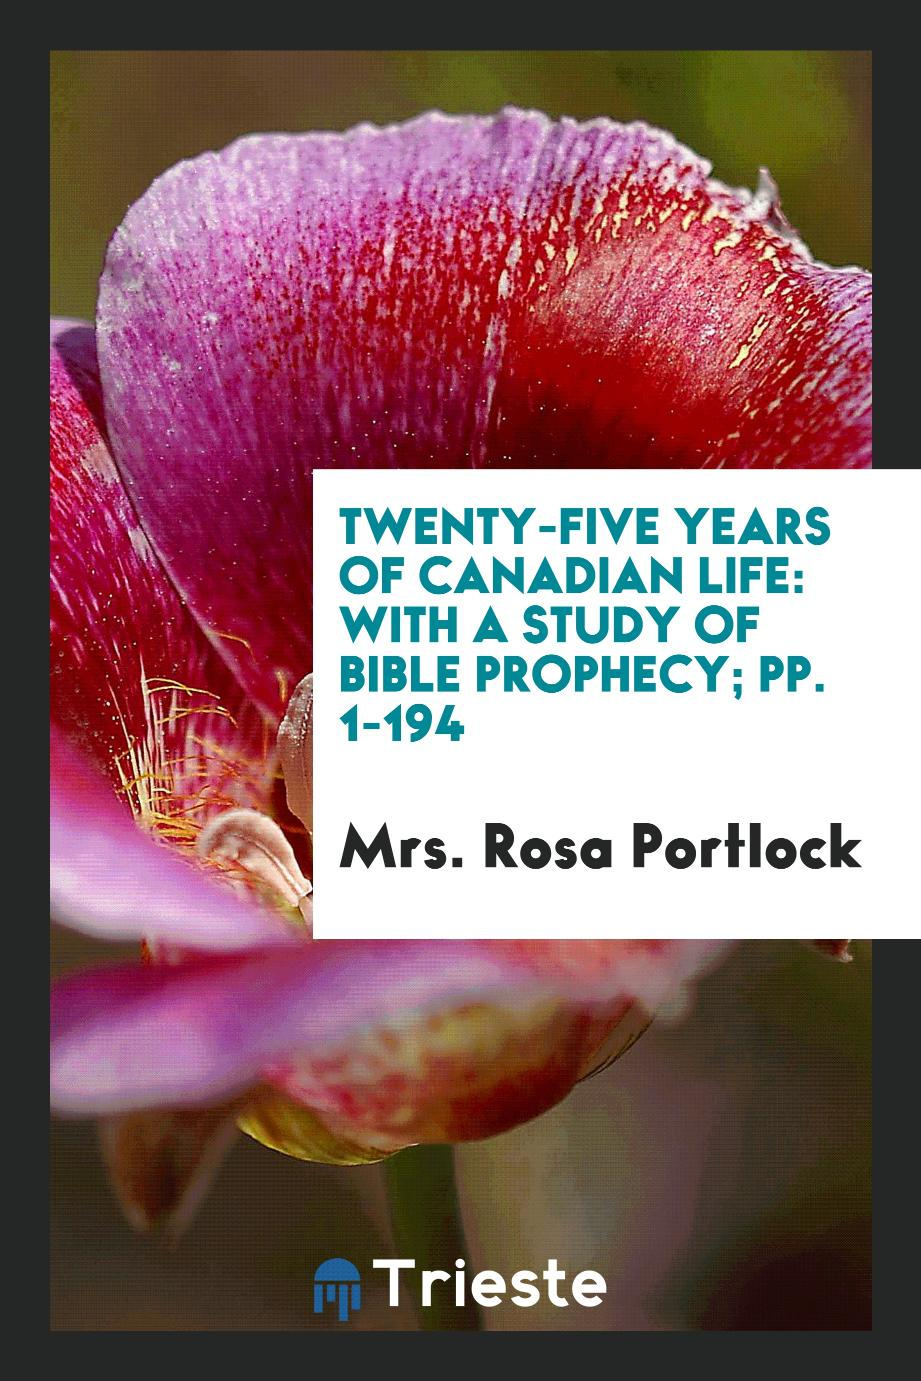 Mrs. Rosa Portlock - Twenty-Five Years of Canadian Life: With a Study of Bible Prophecy; pp. 1-194